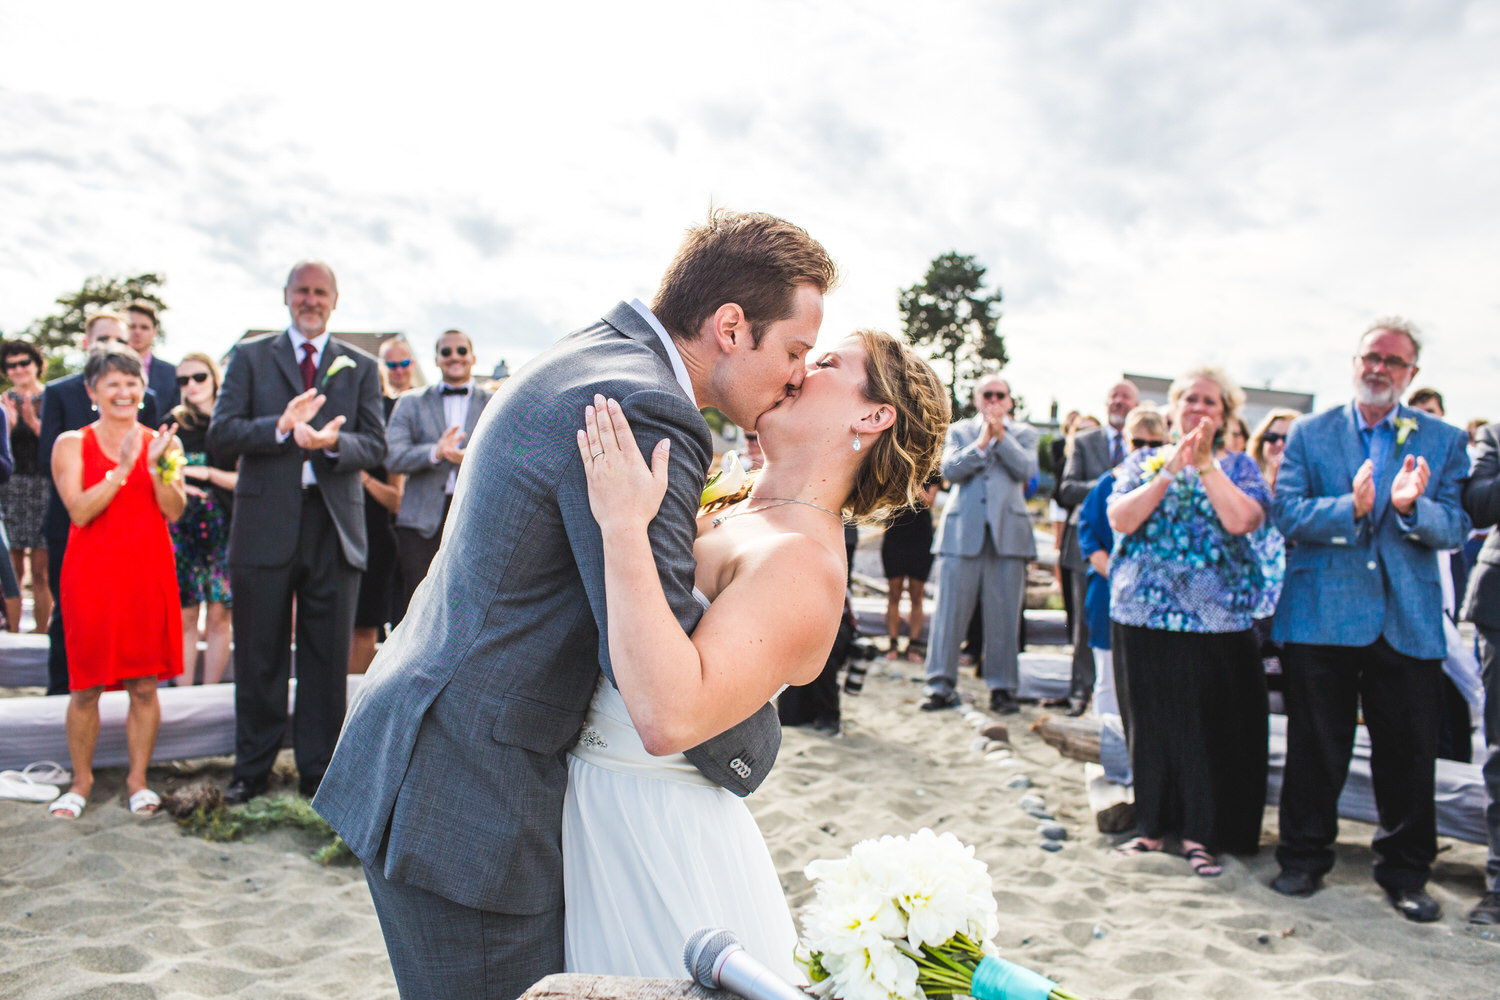 Bride and groom kiss at Centennial Beach wedding